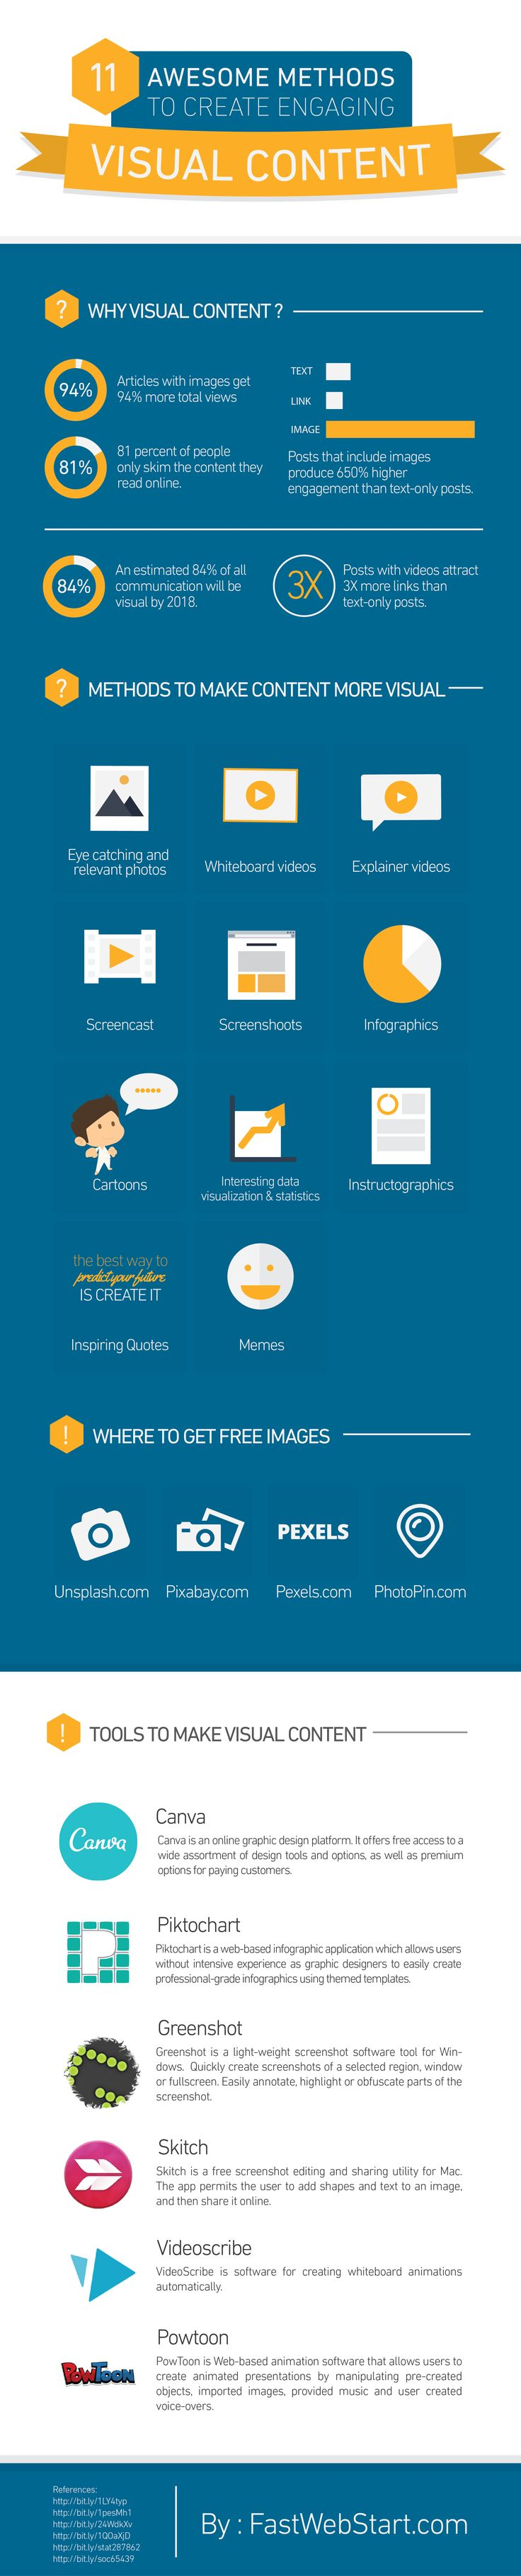 11 Awesome Methods To Create Engaging Visual Content #infographic http://bit.ly/2mvUxoF